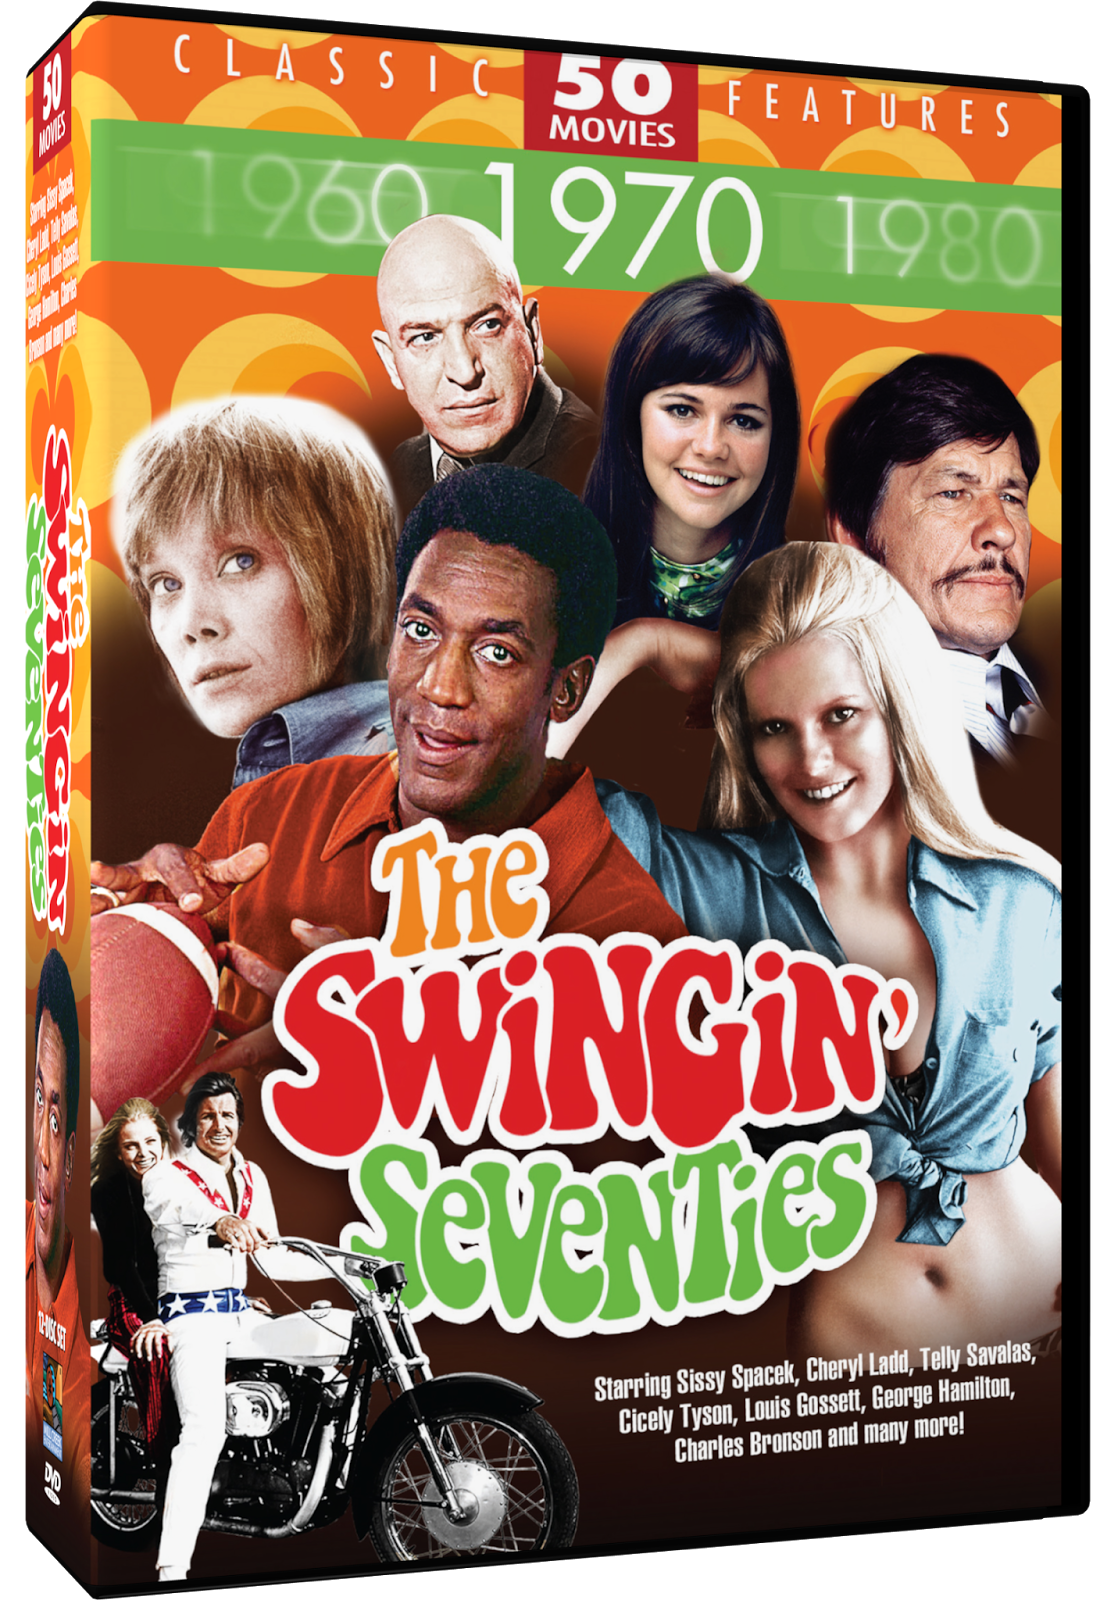 The Swingin' Seventies